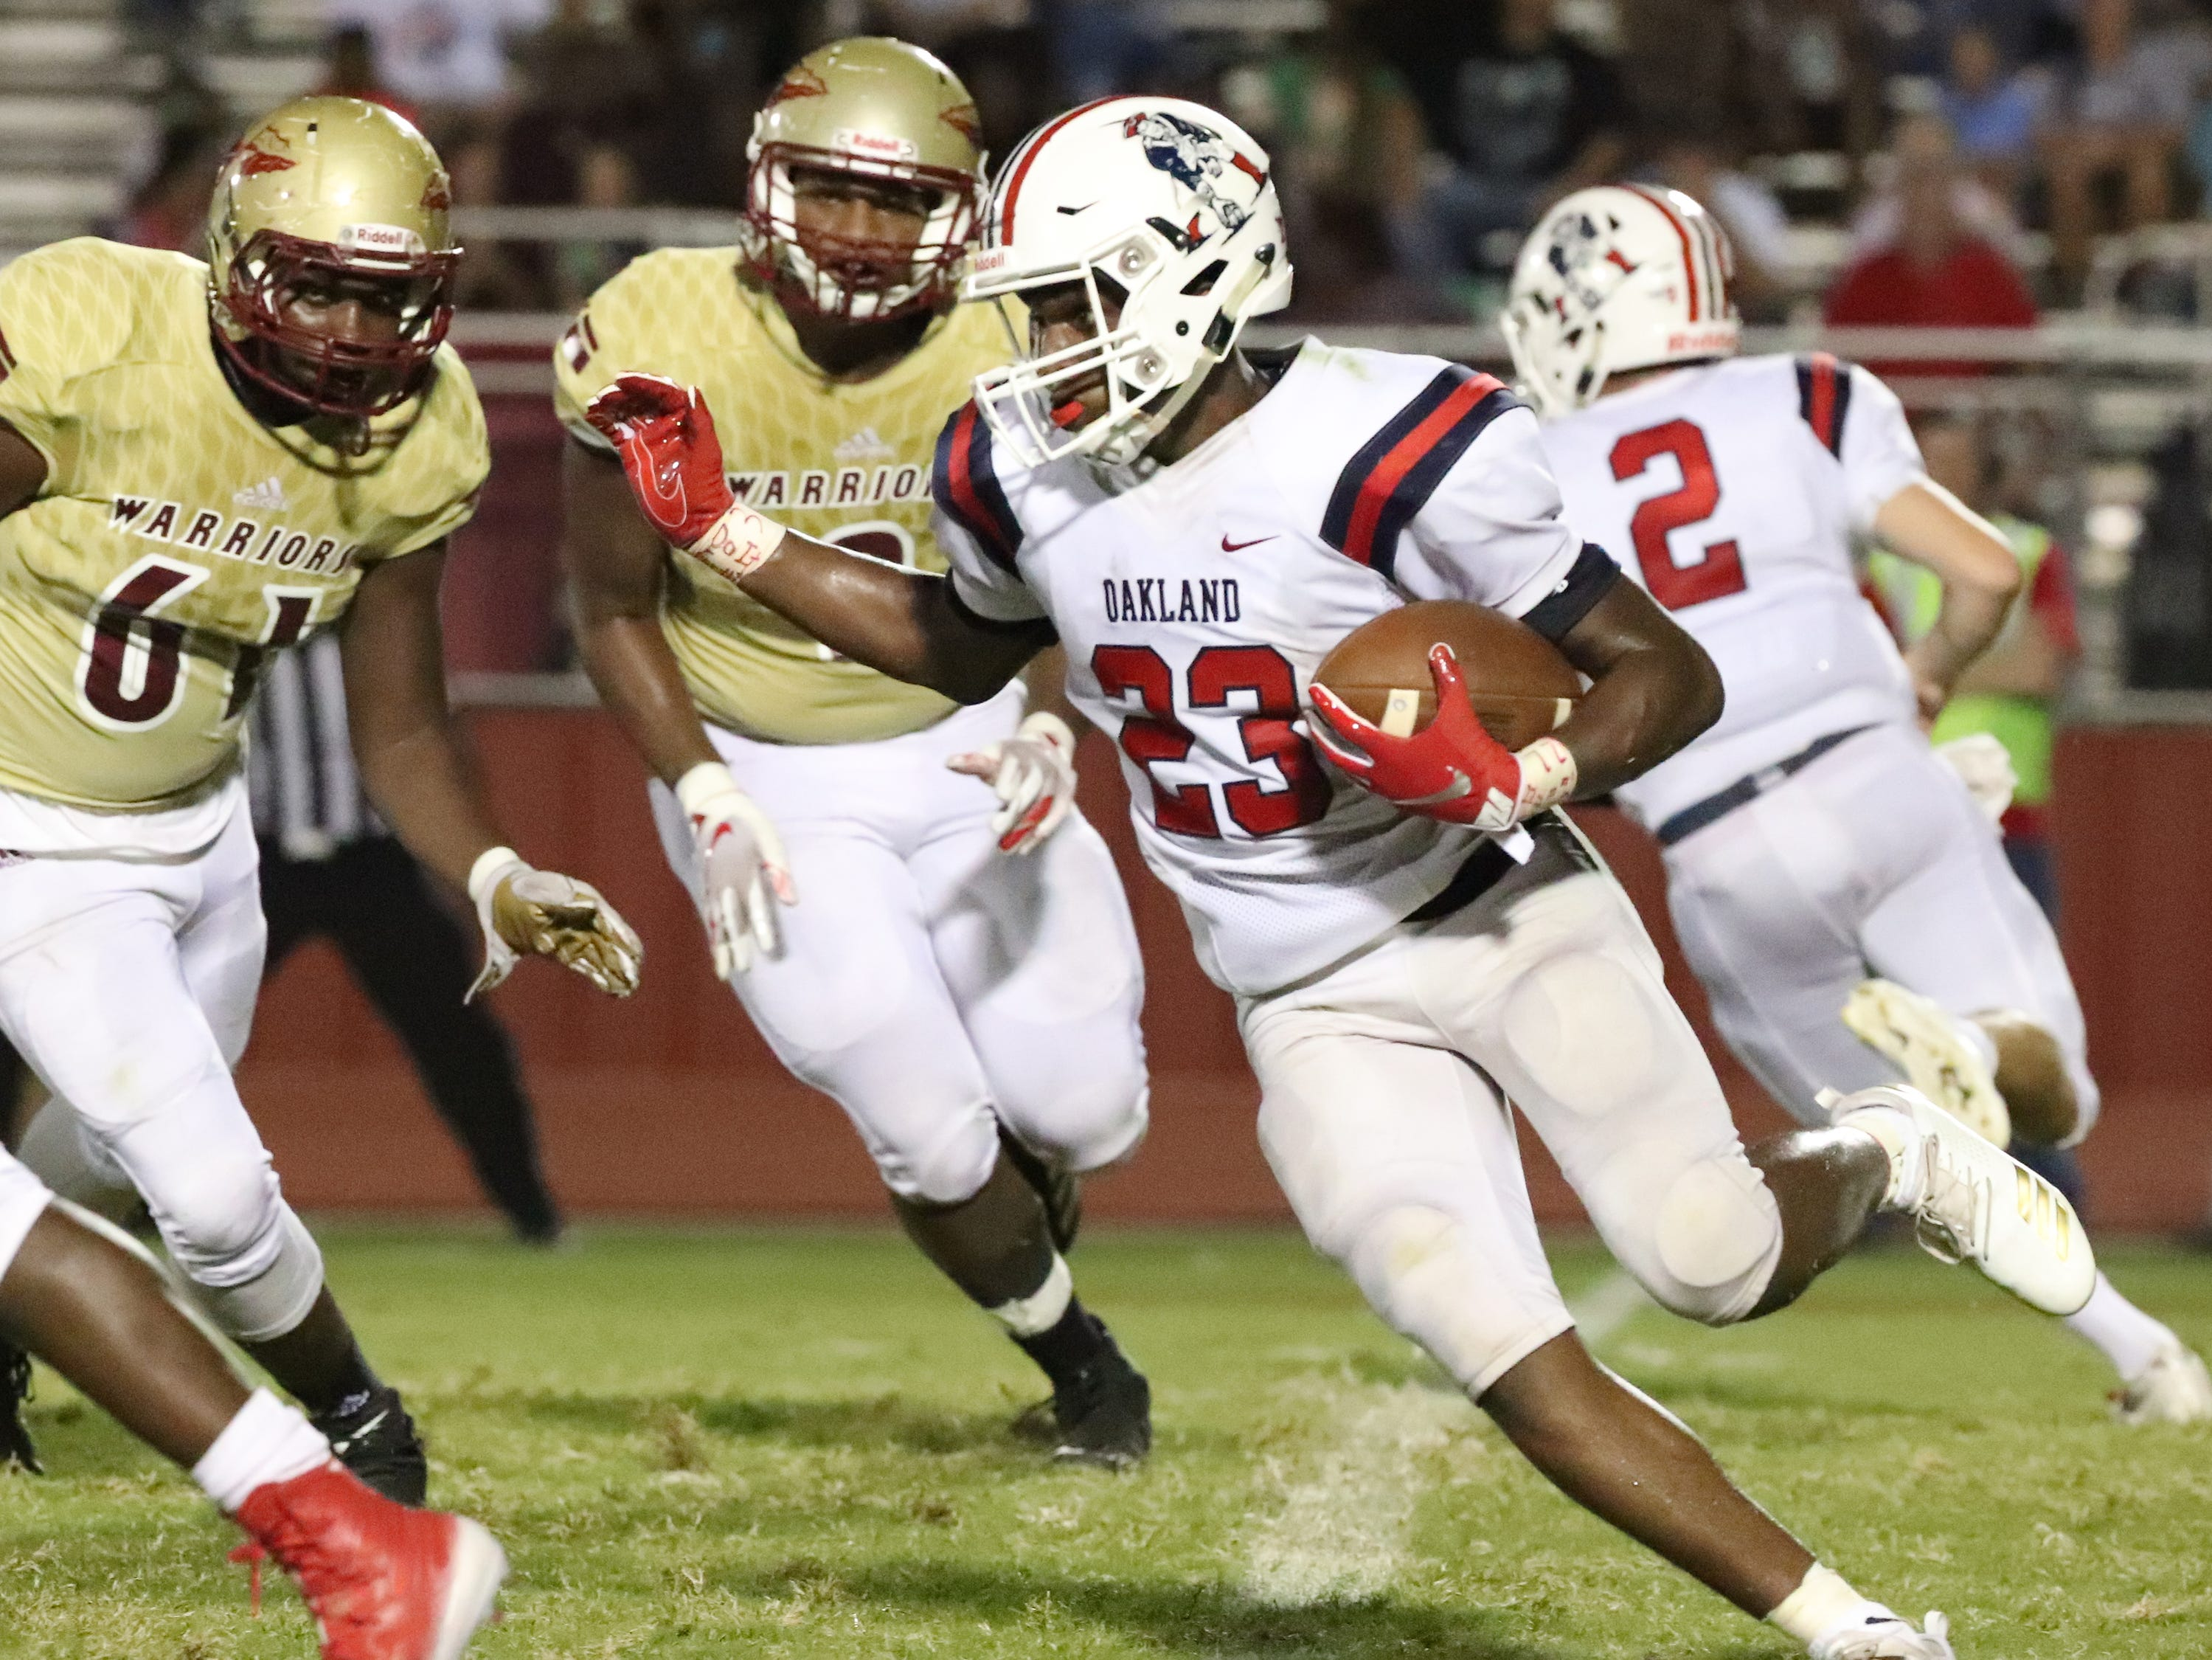 Oakland's BJ Connard (23) runs the ball against Riverdale, at Riverdale, during the Battle of the Boro on Friday, Sept. 14, 2018.